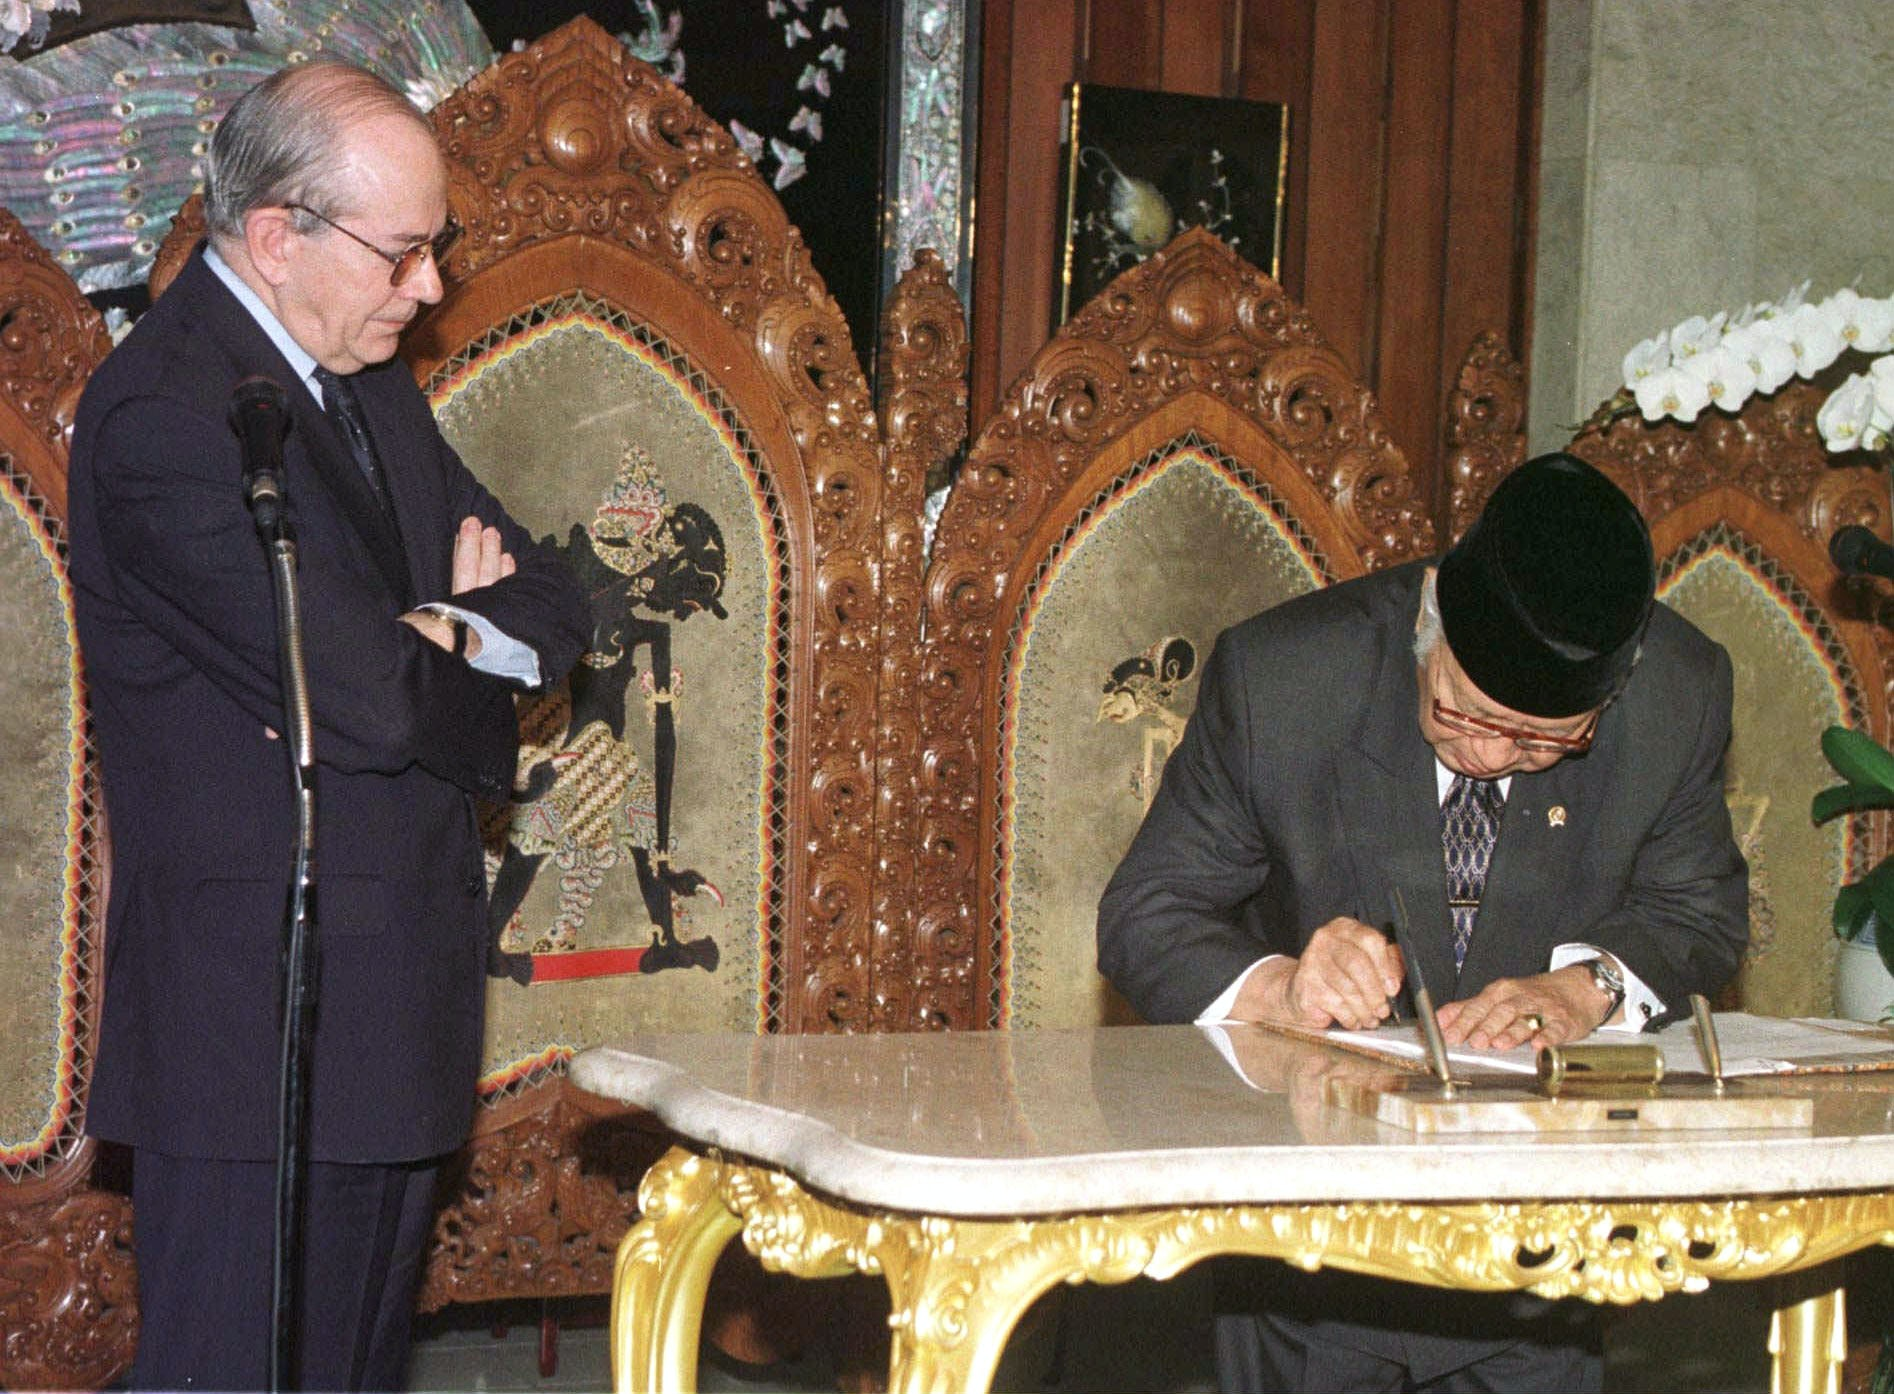 International Monetary Fund (IMF) Managing Director Michel Camdessus, left, looks on as Indonesian President Suharto signs the new IMF deal at Cendana Residence in Jakarta Thursday, Jan. 15, 1998. Bowing to international pressure for reform, President Suharto signed a new deal with the IMF aimed at boosting Indonesia's troubled economy. (AP Photo/Muchtar Zakaria)